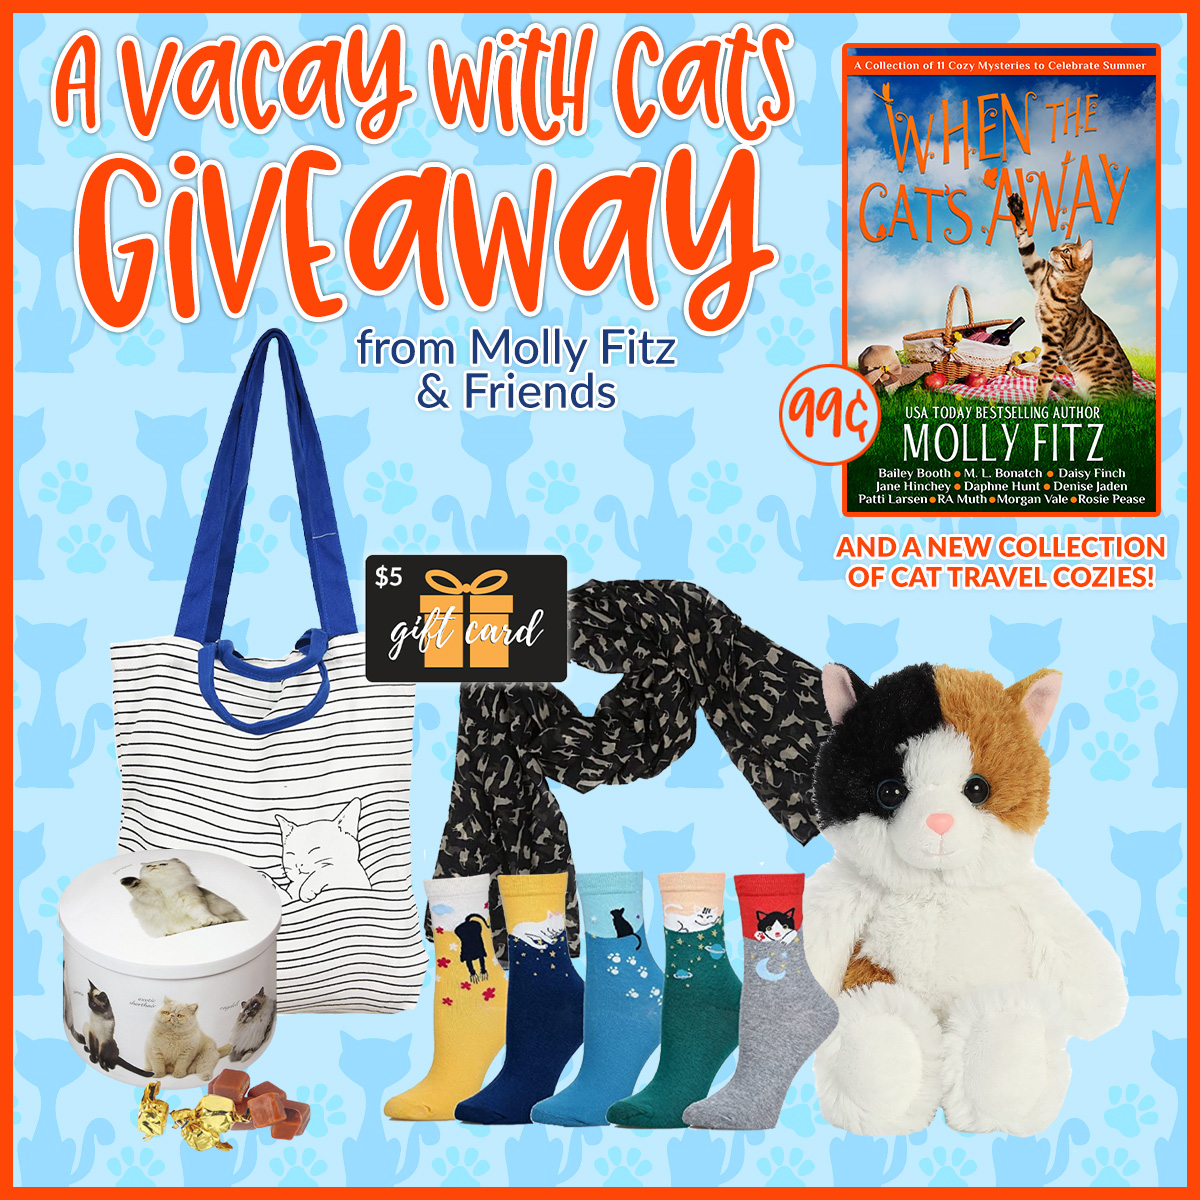 A Vacay with Cats Giveaway from Molly Fitz & Friends